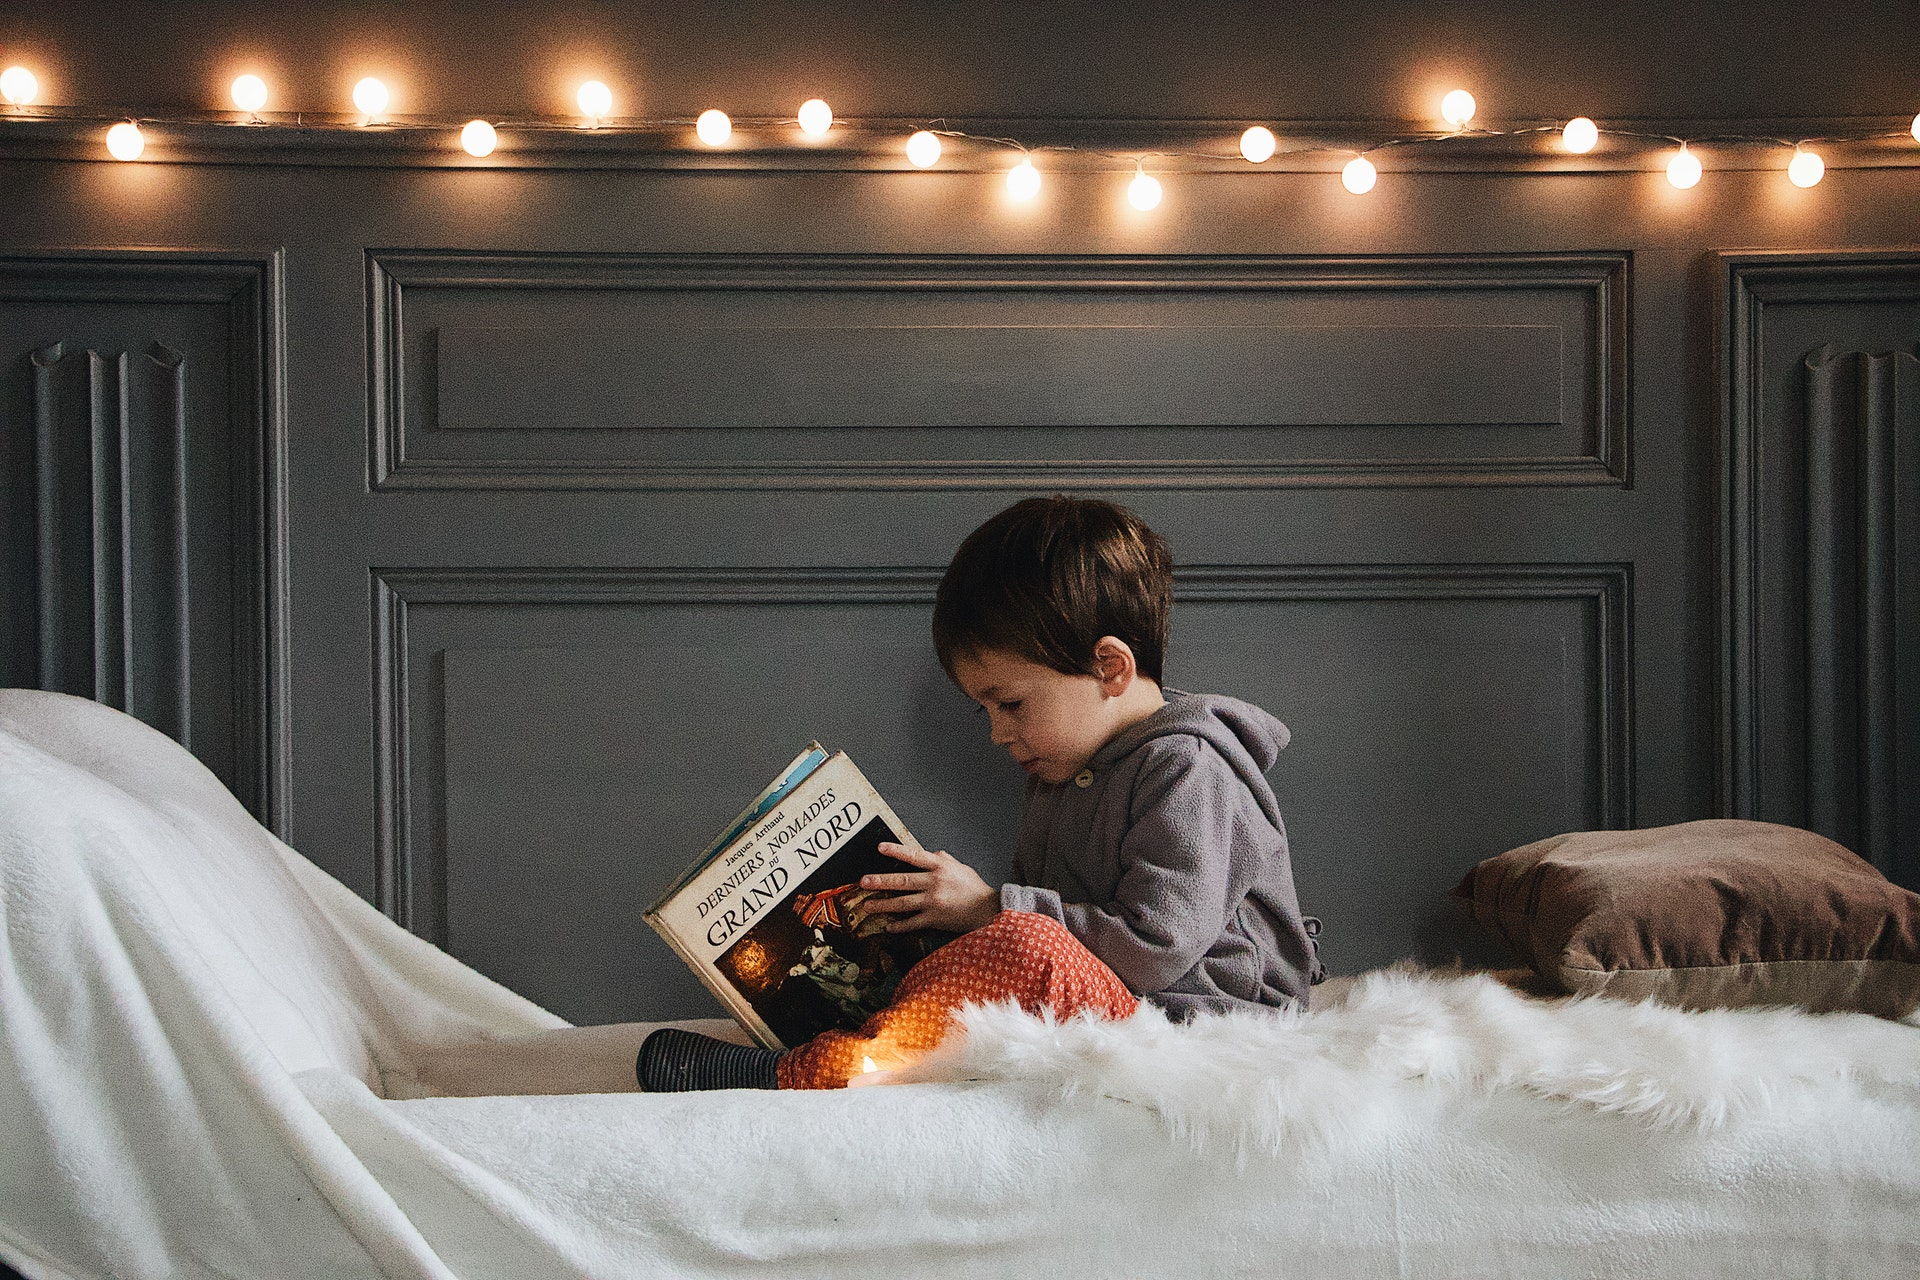 Young boy reading in bed